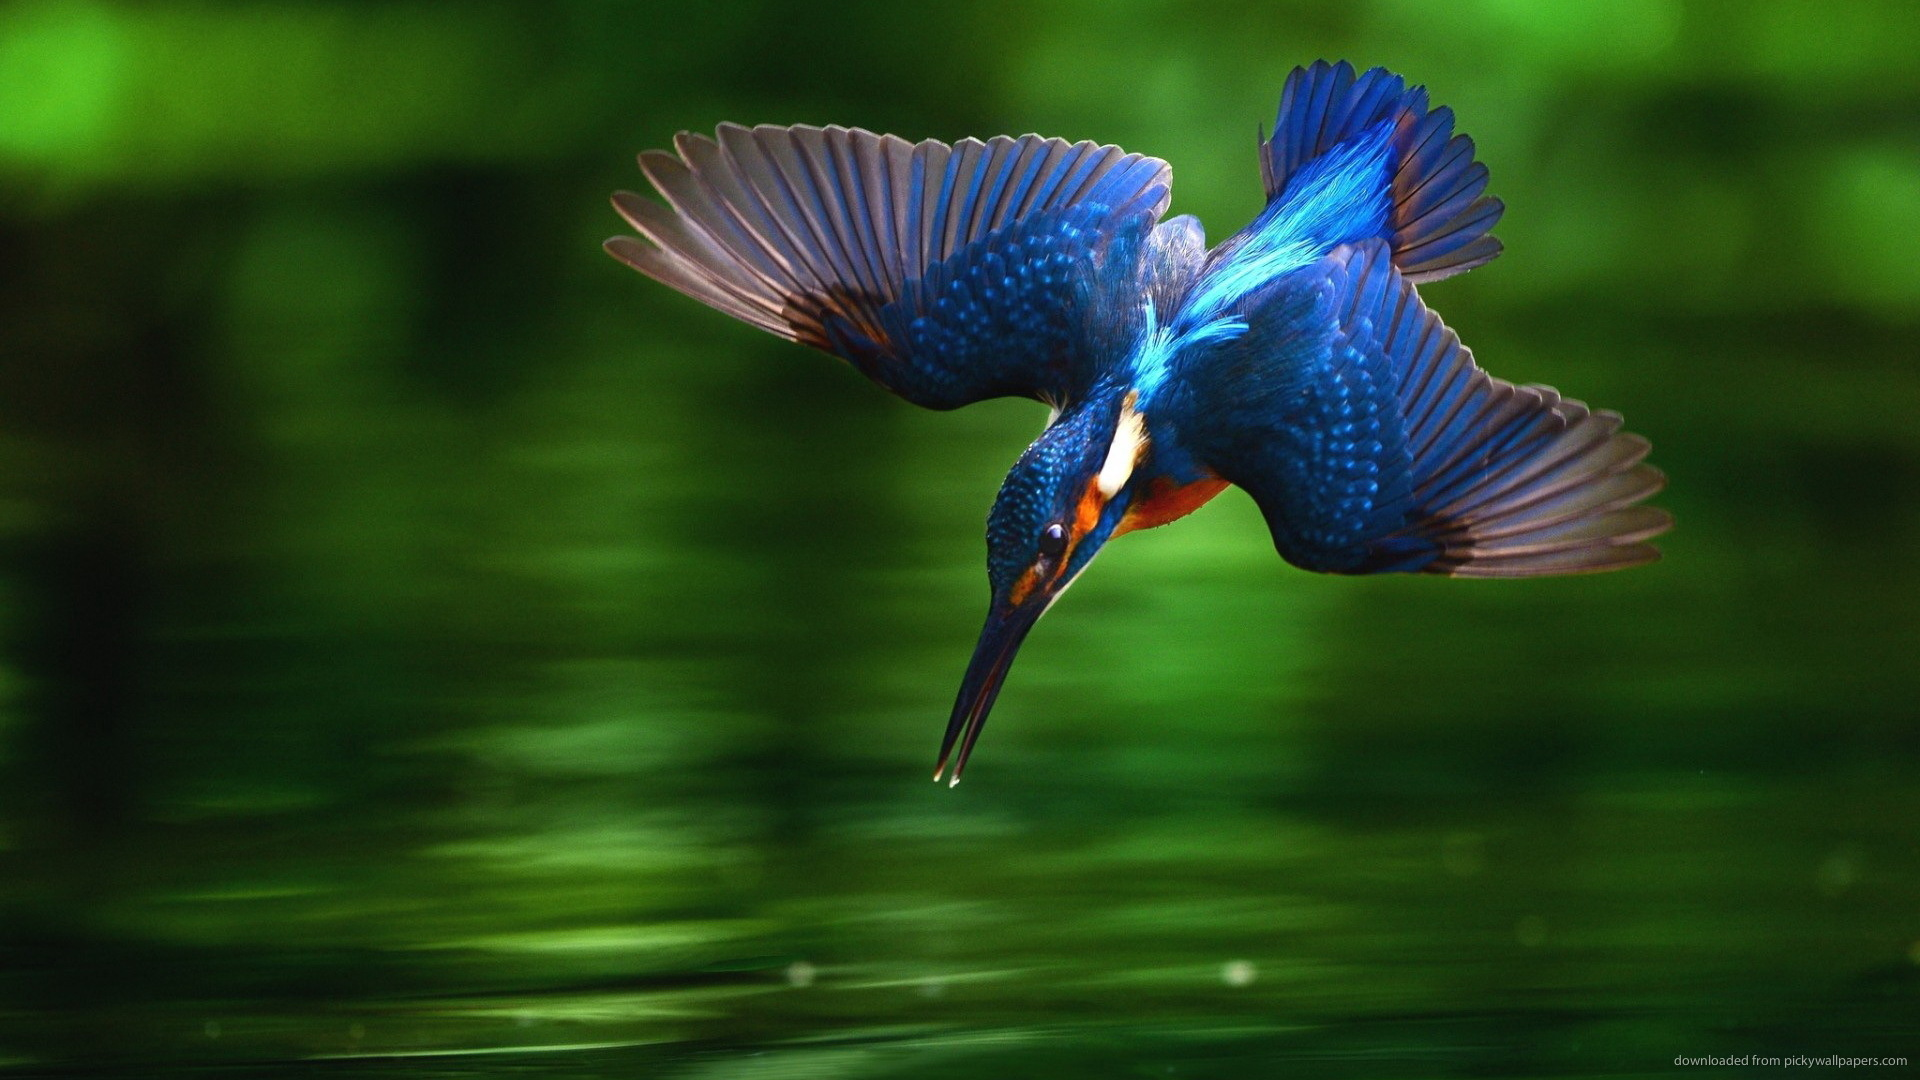 Kingfisher Bird Diving Into Water Wallpaper Picture For iPhone 1920x1080